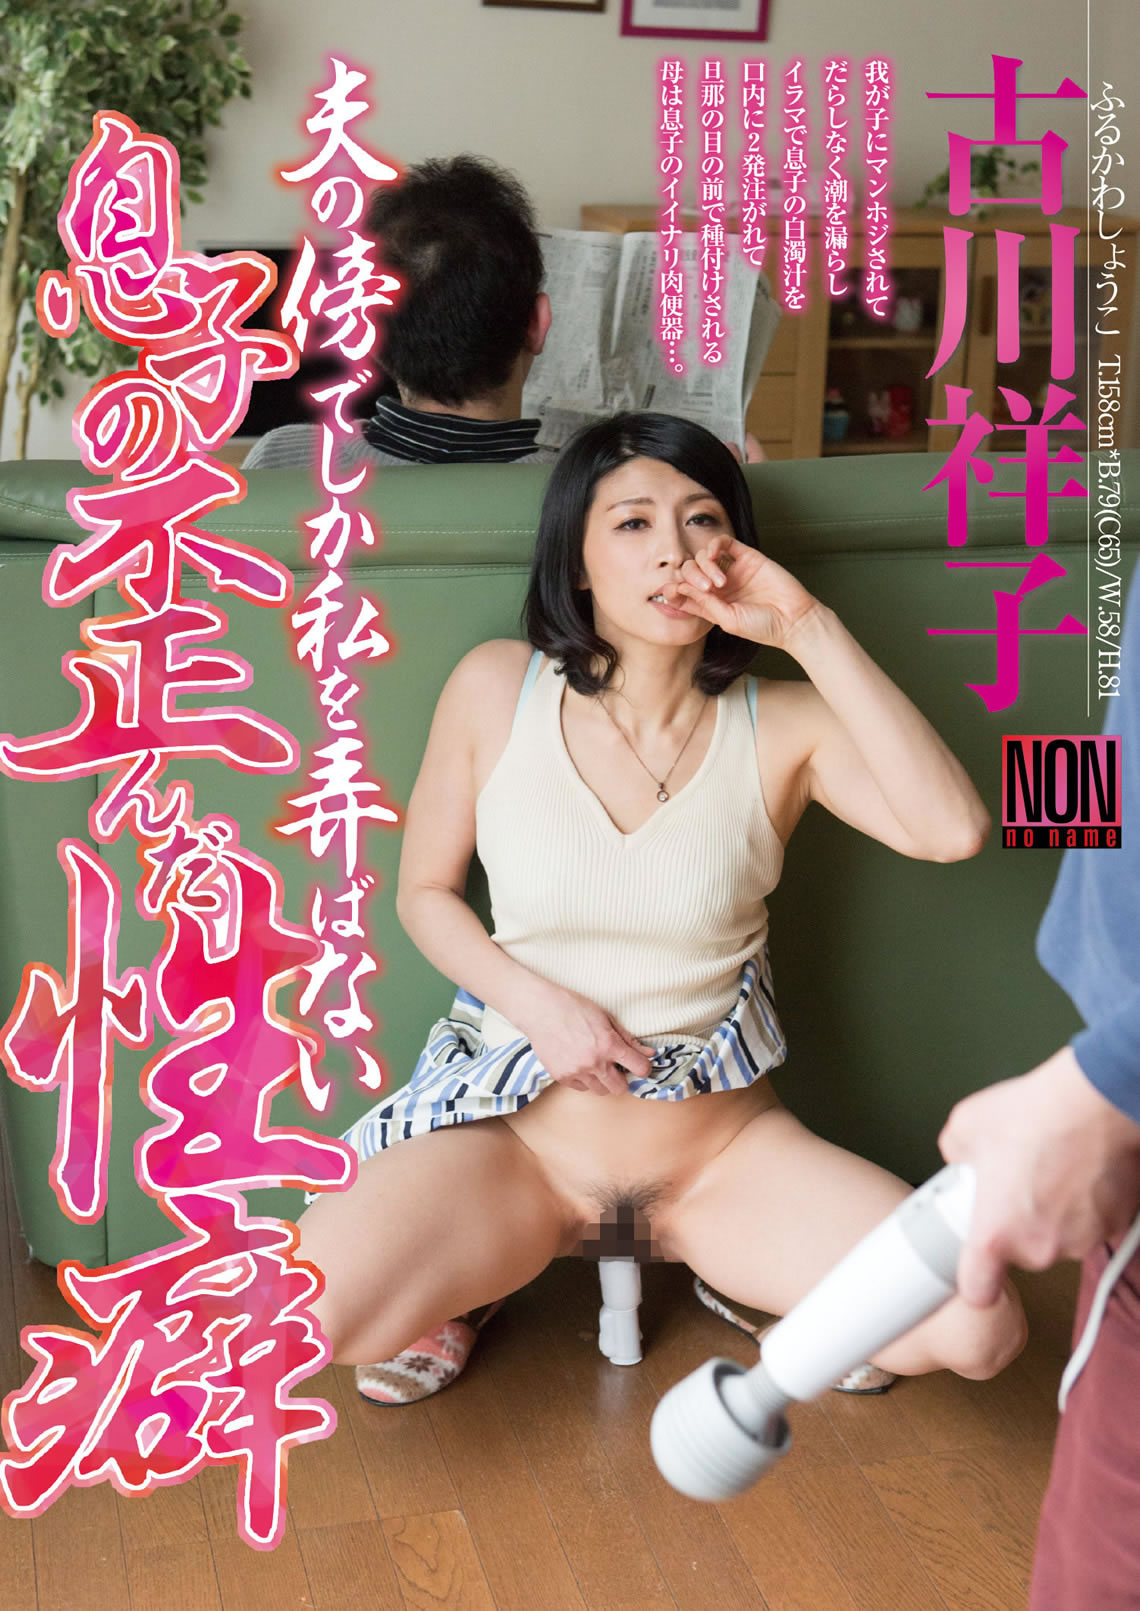 Her Son's Sexual Tendency That Only Fucks Her Next Her Husband, Shouko Furukawa